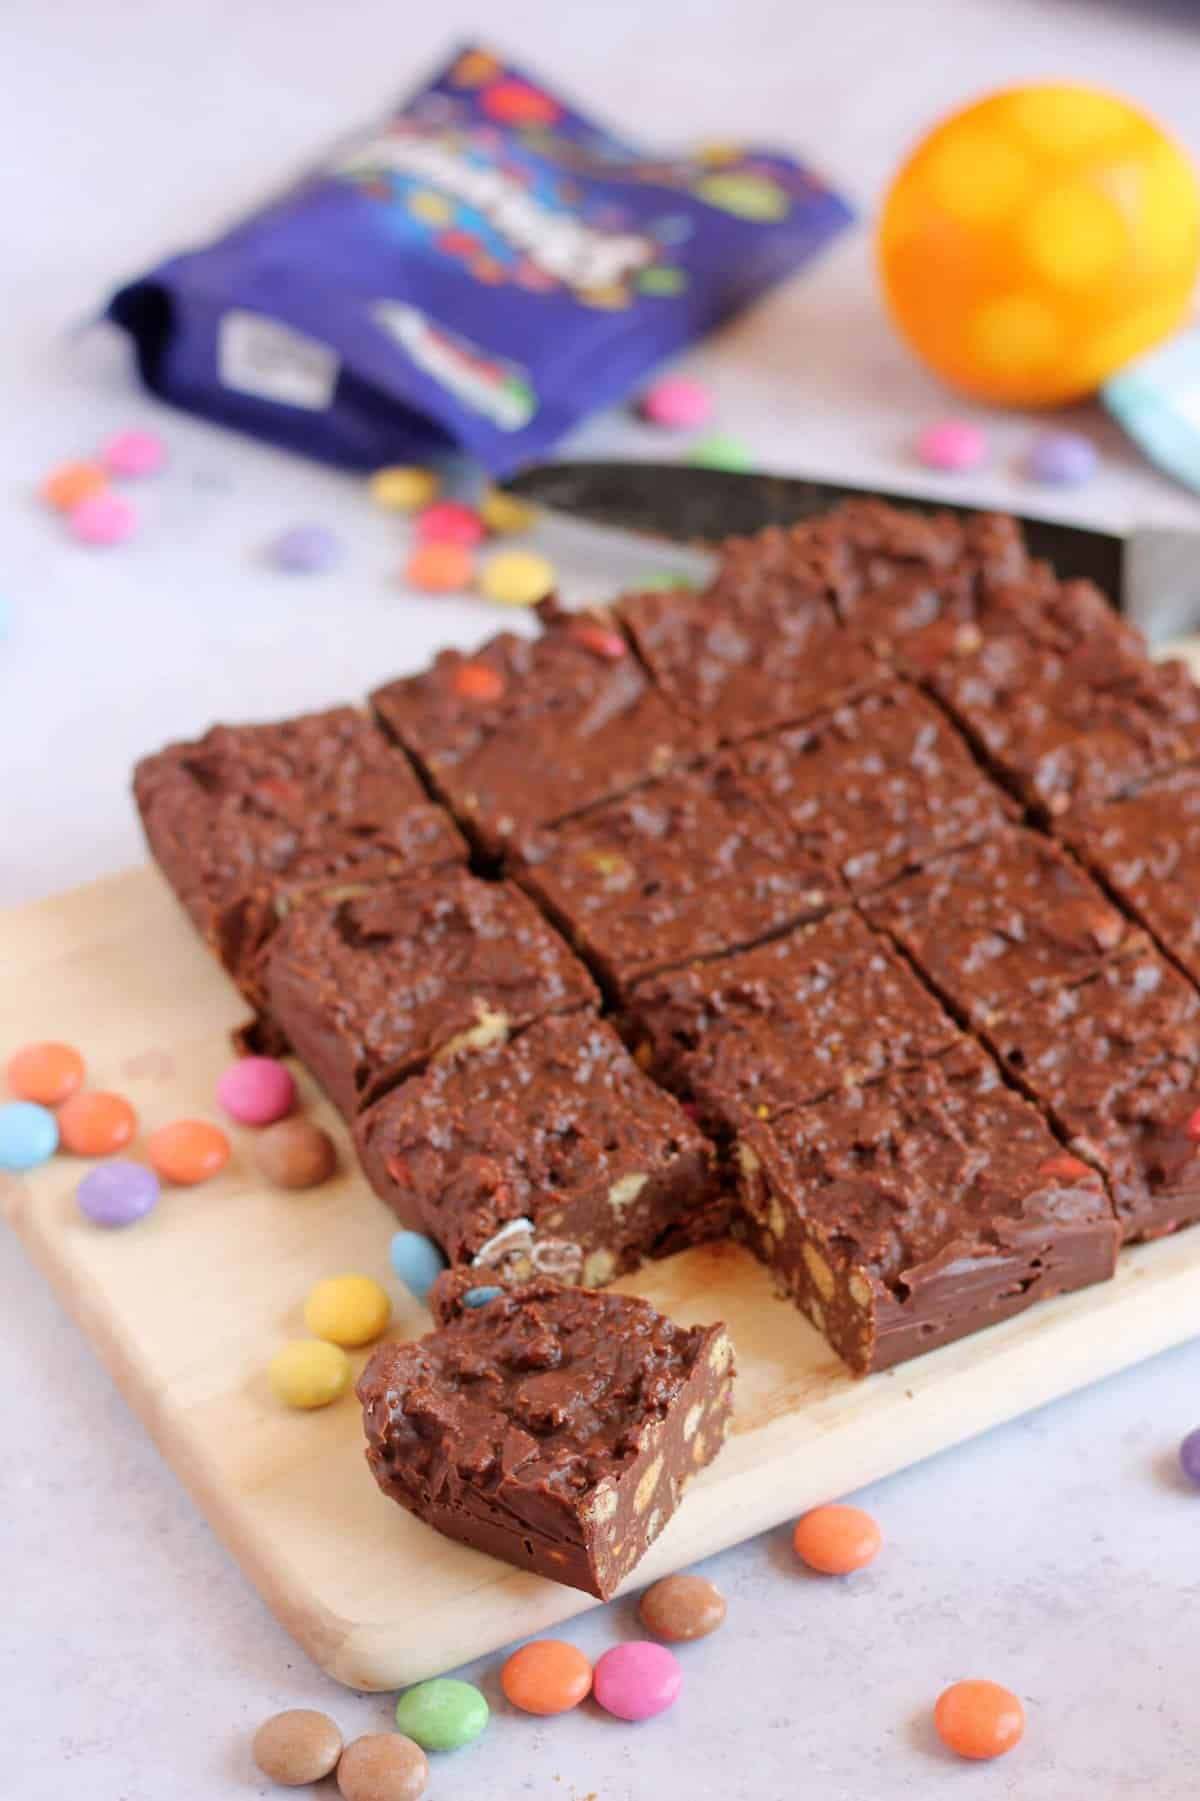 Chocolate biscuit cake, cut into squares on a chopping board.